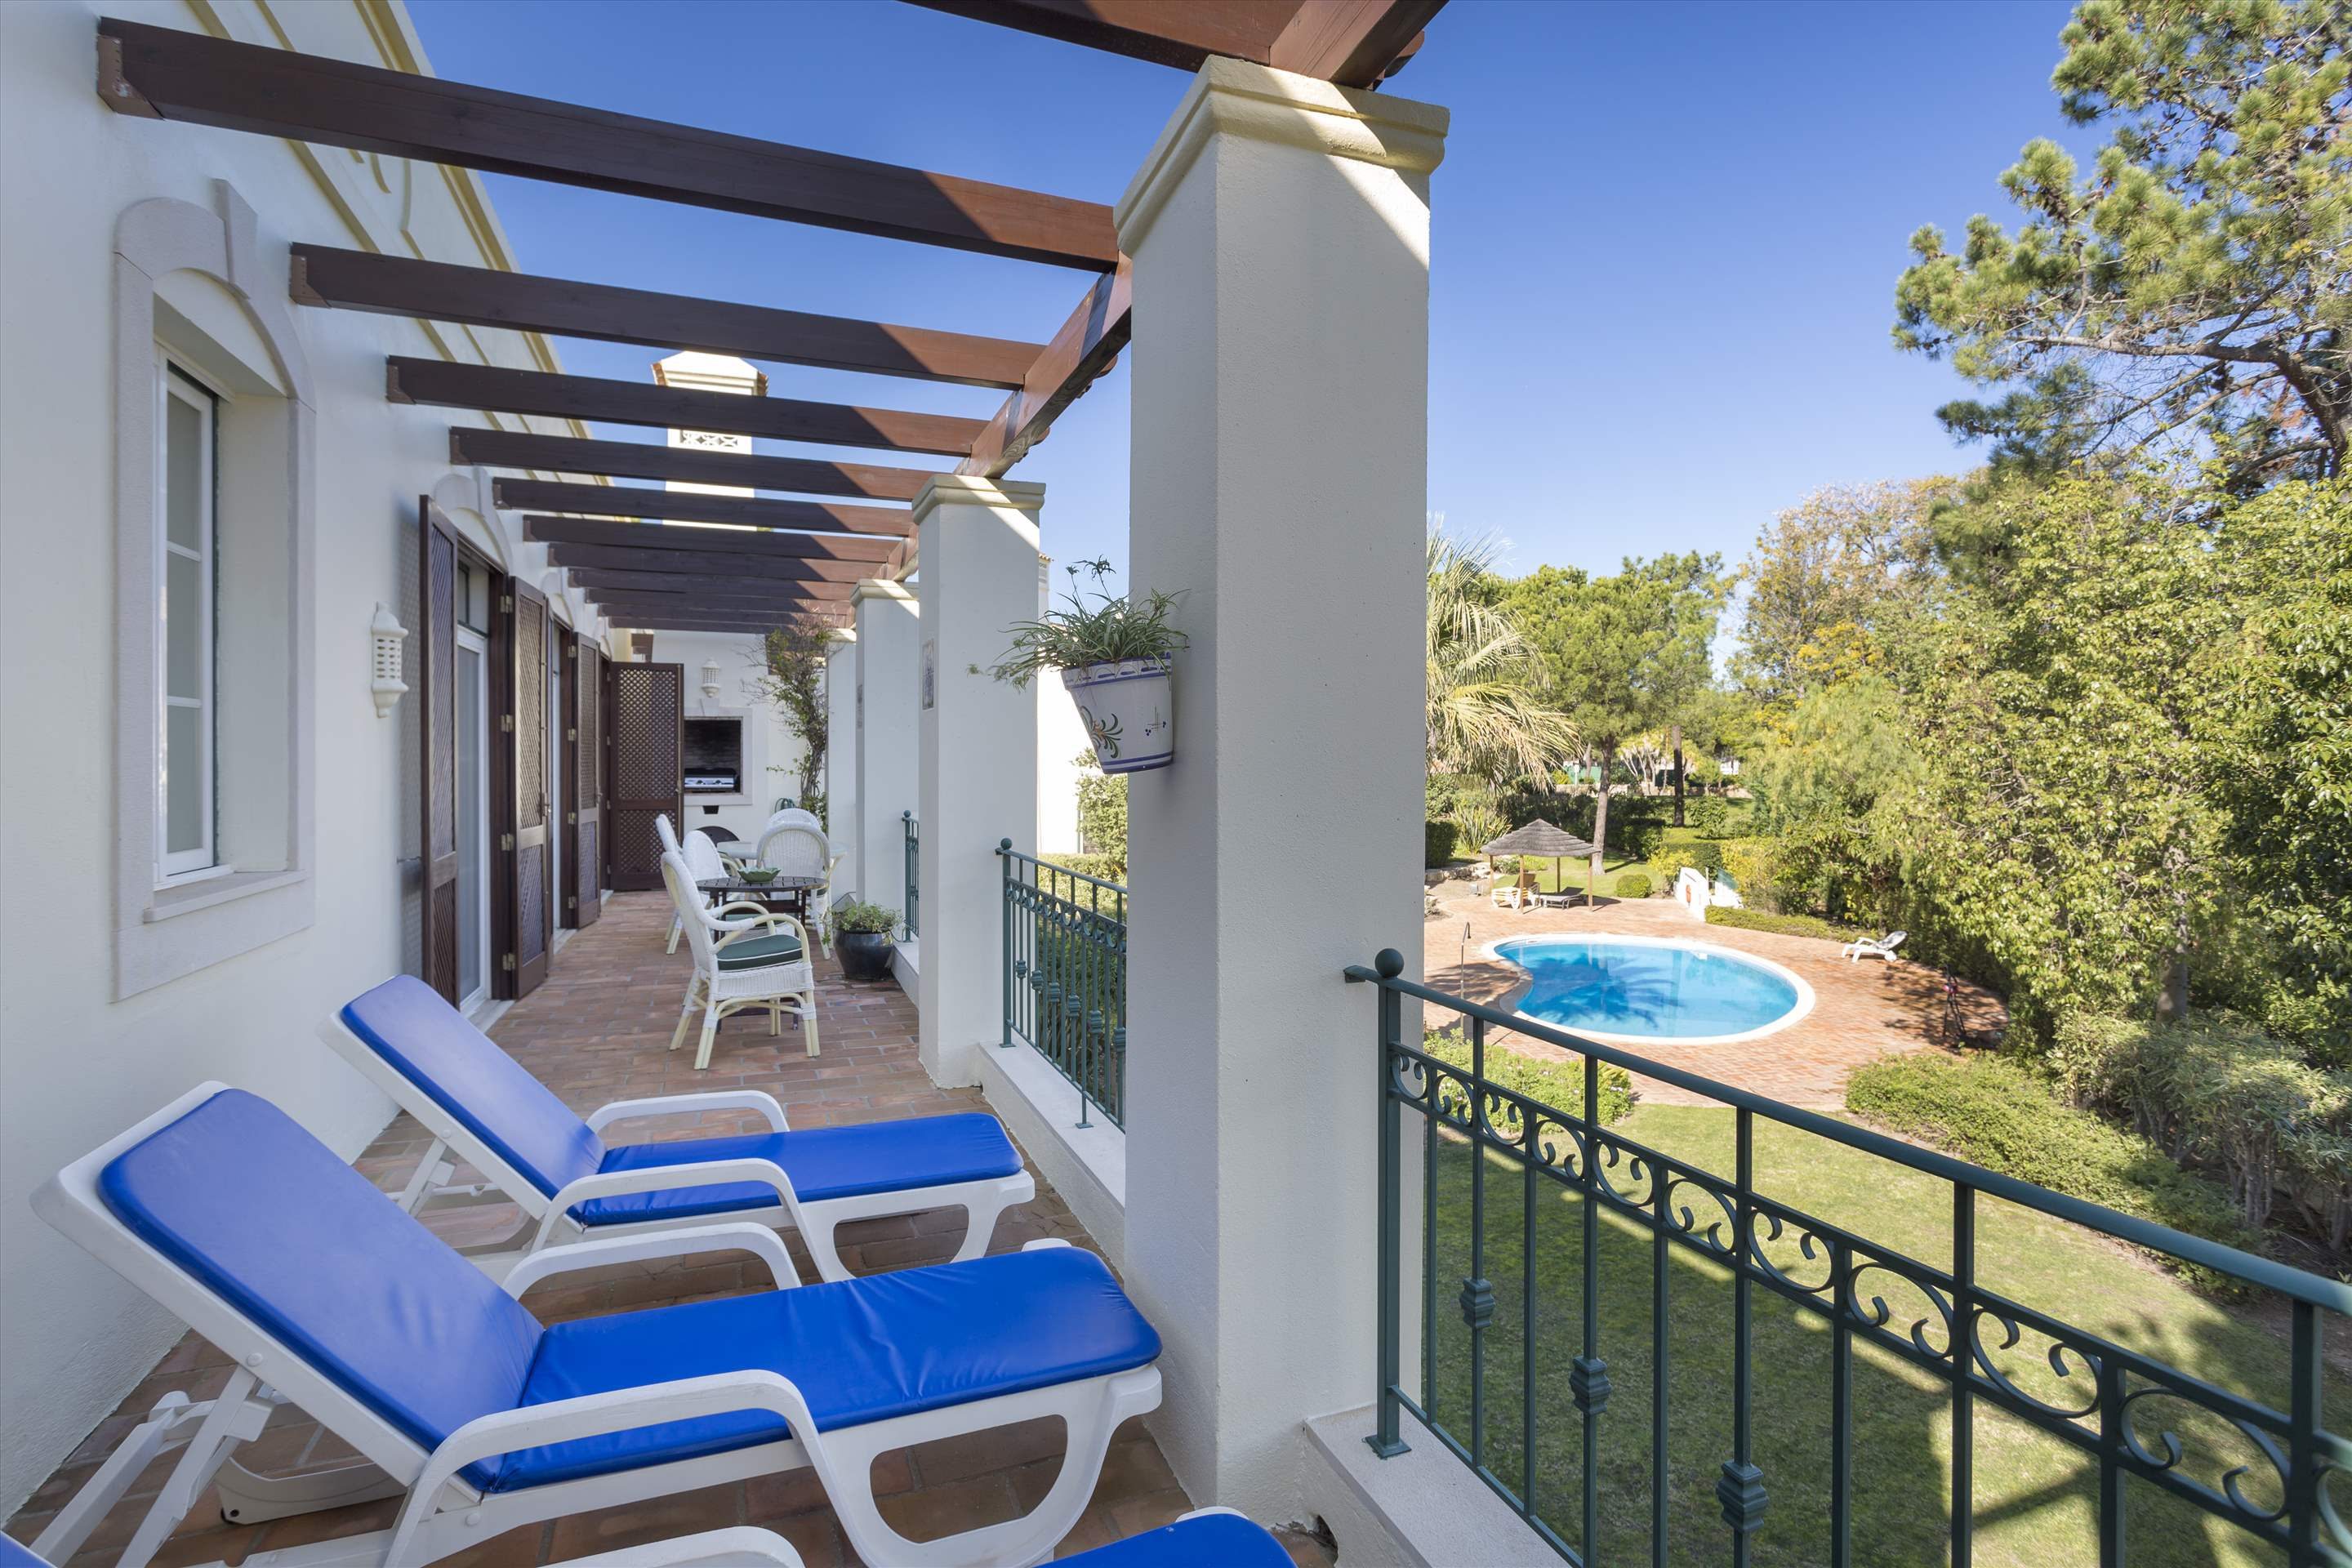 Apartment Dolores, 2 bedroom apartment in Quinta do Lago, Algarve Photo #2